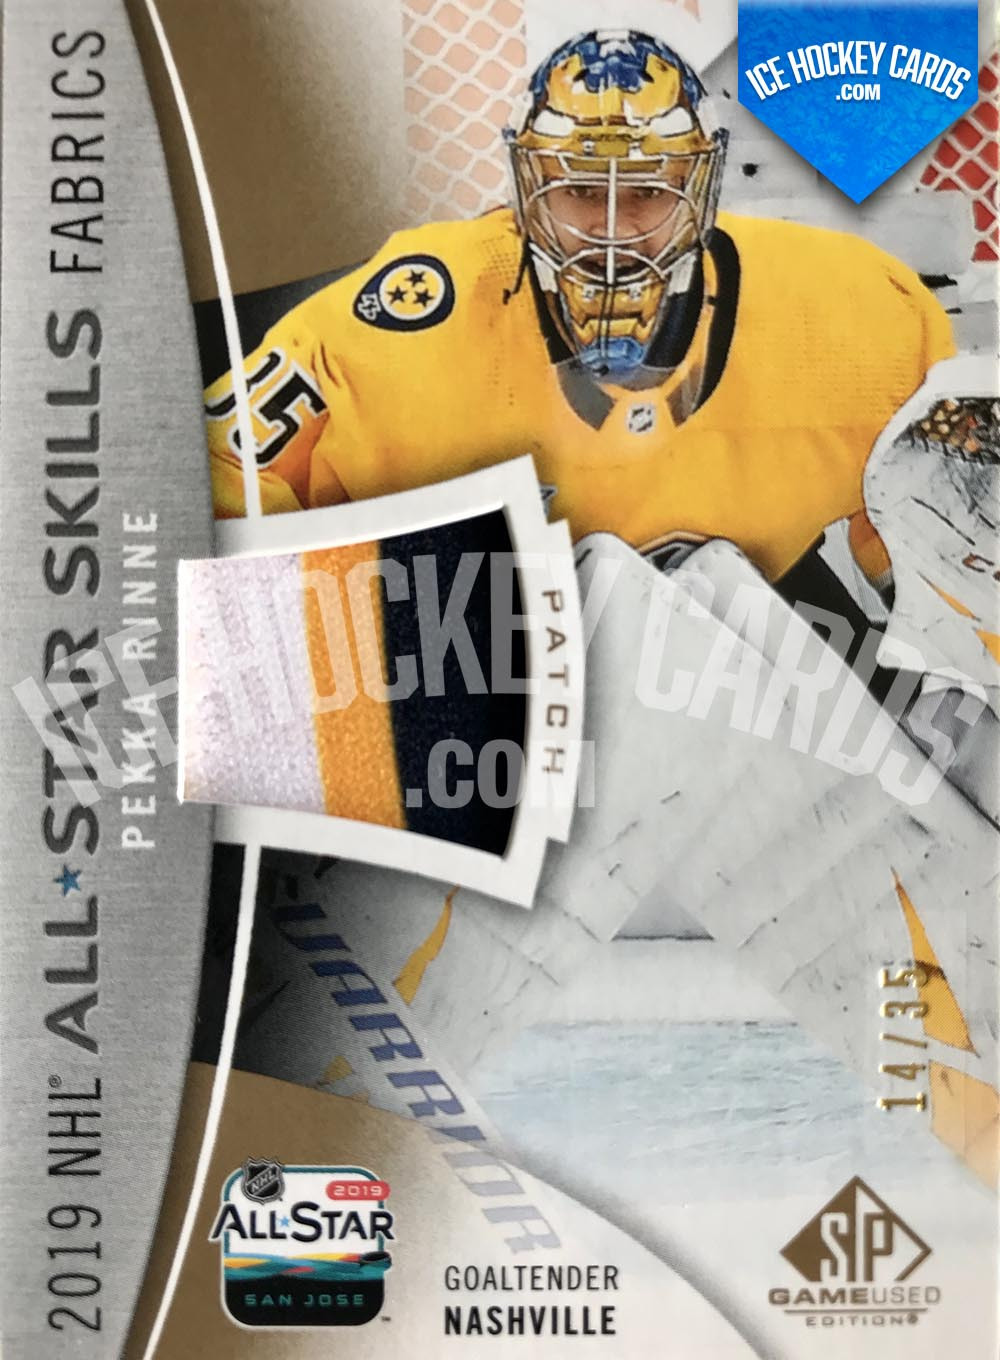 Upper Deck - SP Game Used 2019-20 - Pekka Rinne 2019 NHL All Star Skills Fabrics Patch Card # to 35 RARE